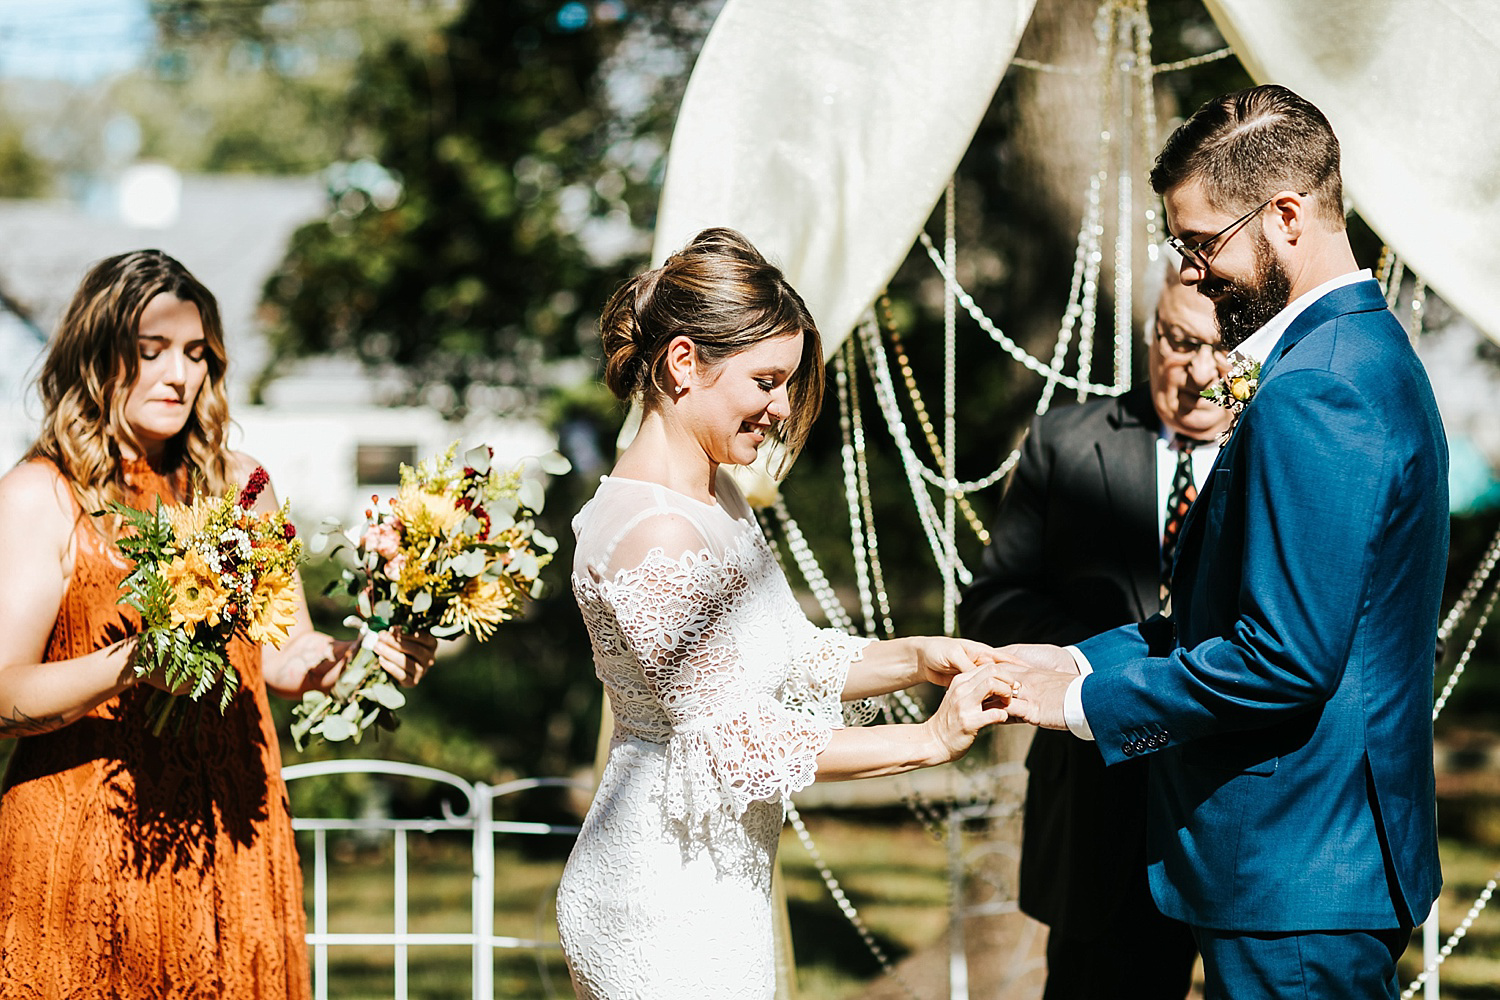 Fall backyard wedding ceremony in pennsylvania by danfredo photos + films